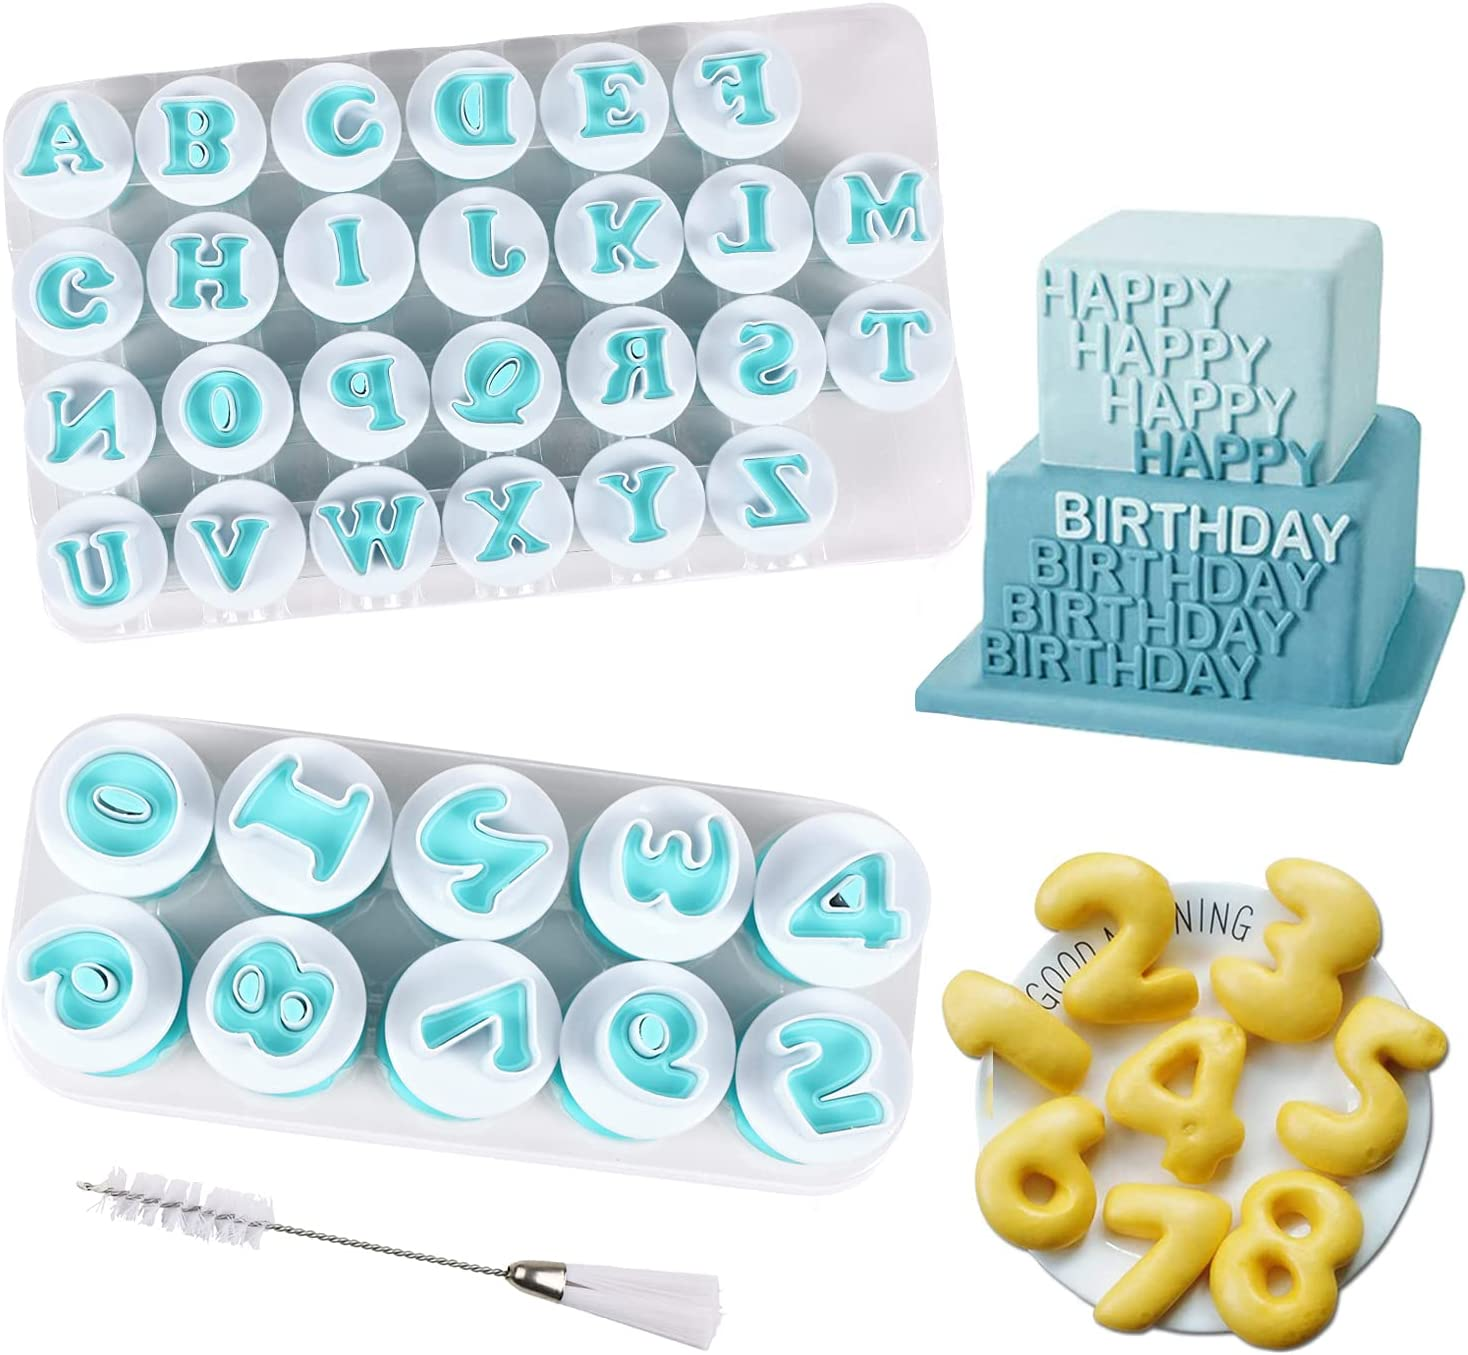 Alphabet Letter Numbers Cake Mould Set, BENBO 36 Pieces Fondant Cake Sugar Craft Cookies Stamp Impress Embosser Plunger with Cleaning Brush Cookie Cutter Mold Biscuit Decorating Tools